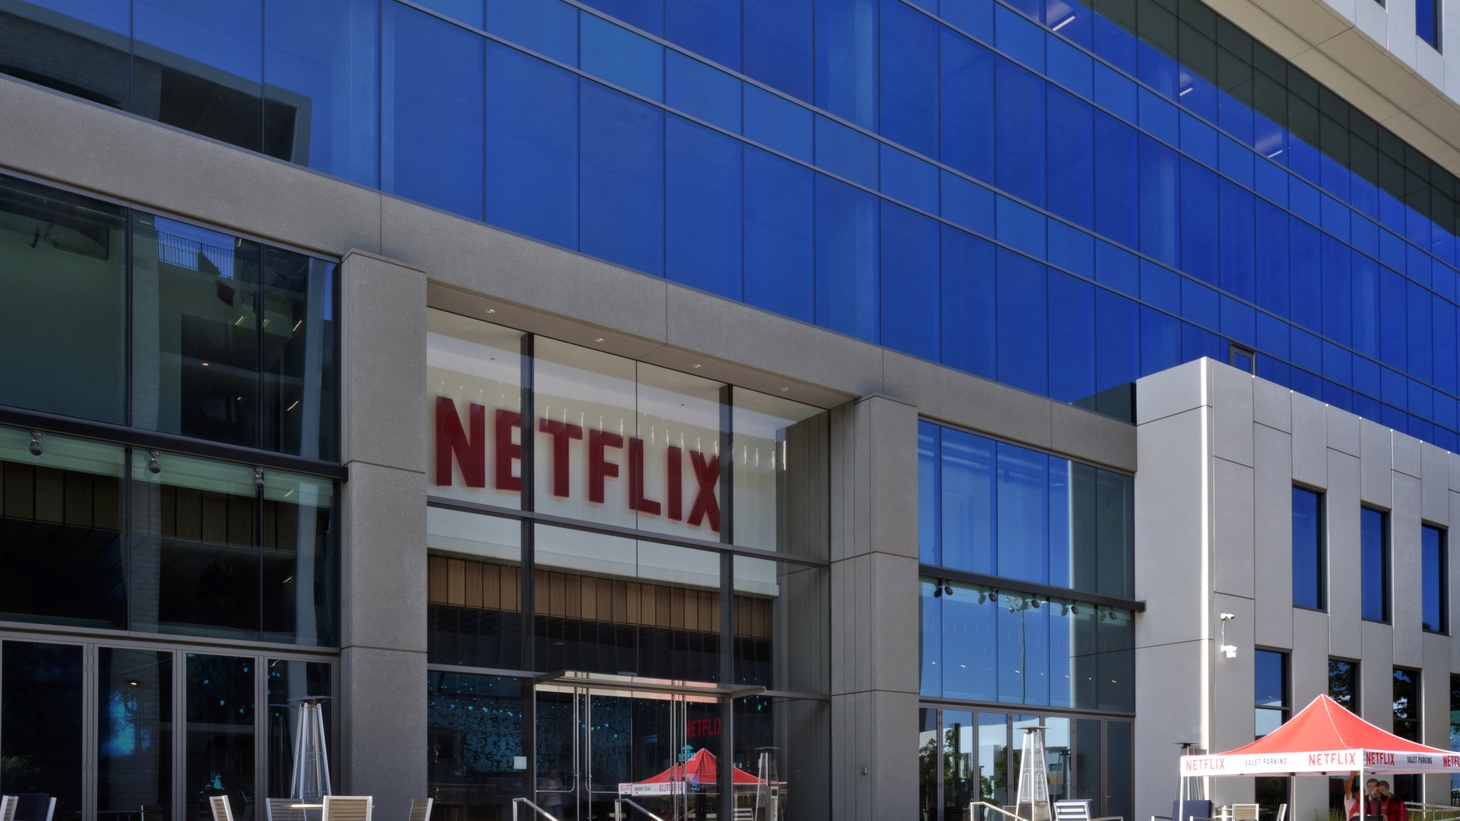 Netflix headquarters in Los Angeles.